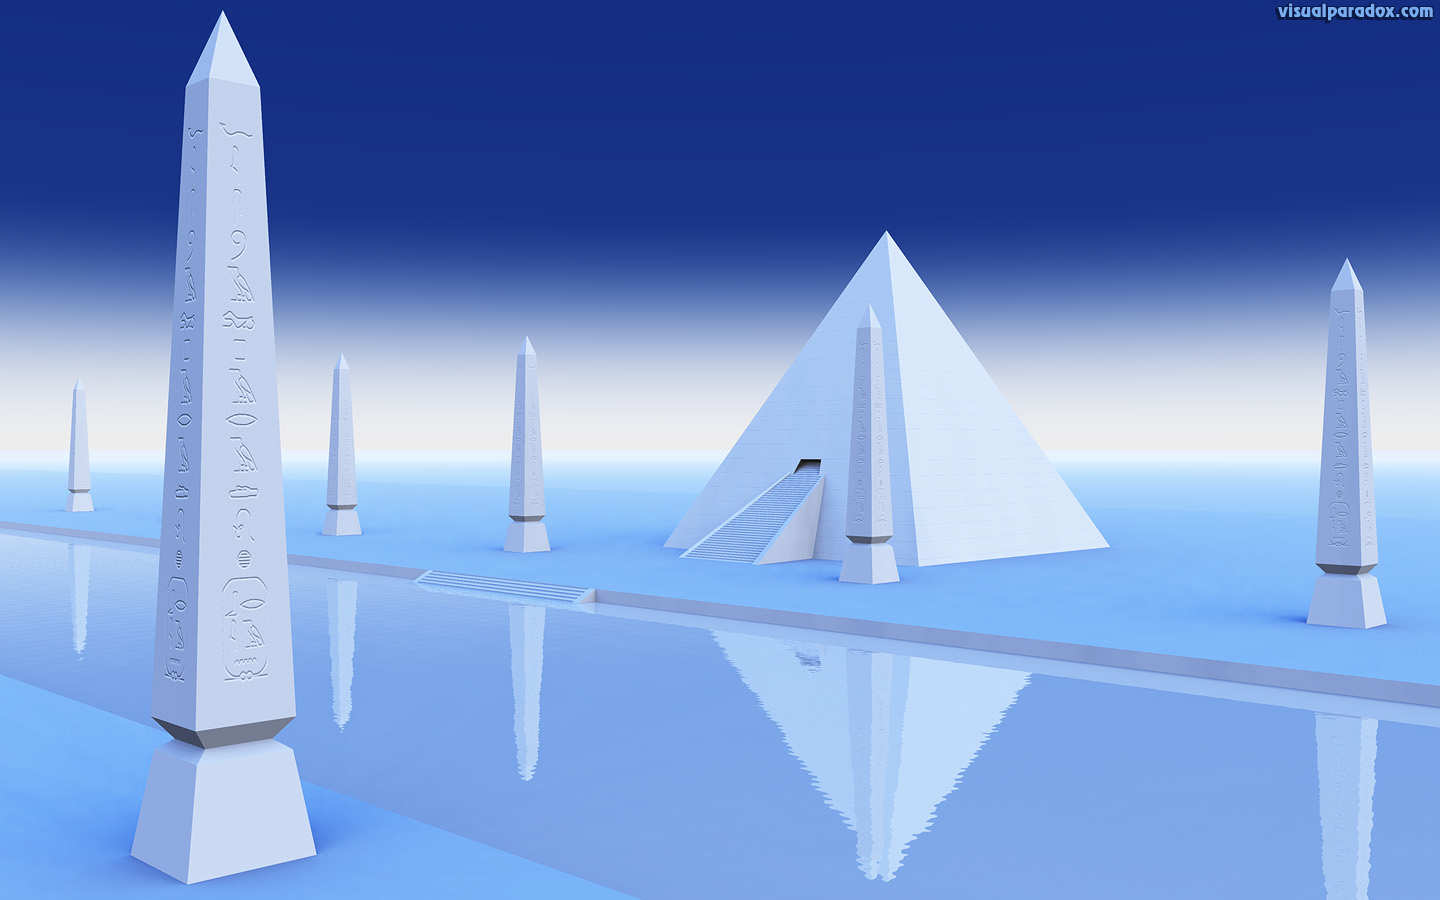 pyramid, river, Styx, Egyptian, hieroglyphics, white, blue, 3d, wallpaper, widescreen